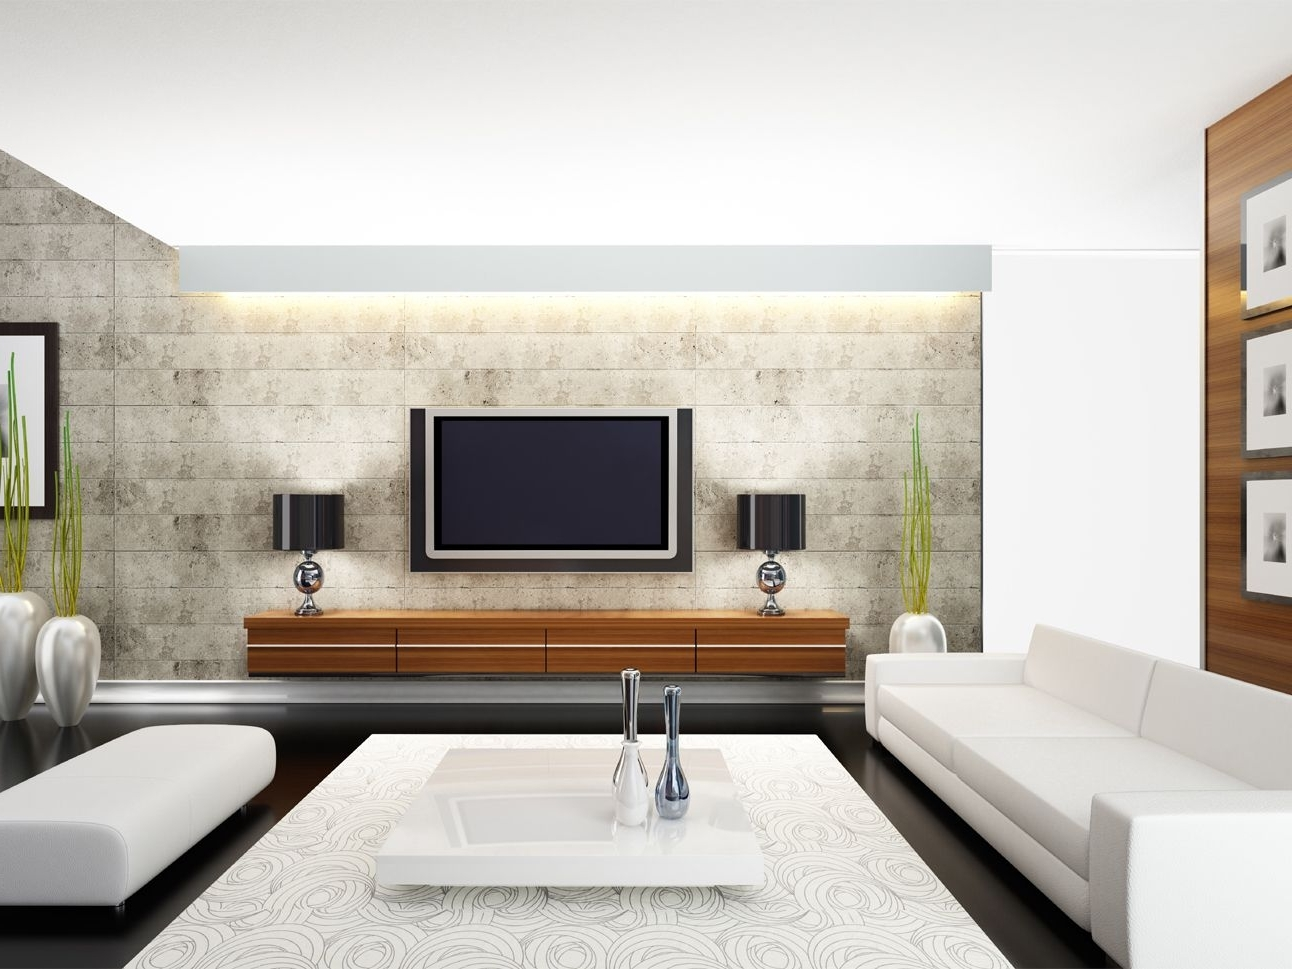 How To Decorate Around A Tv Decorating Living Room With Flat Screen Tv